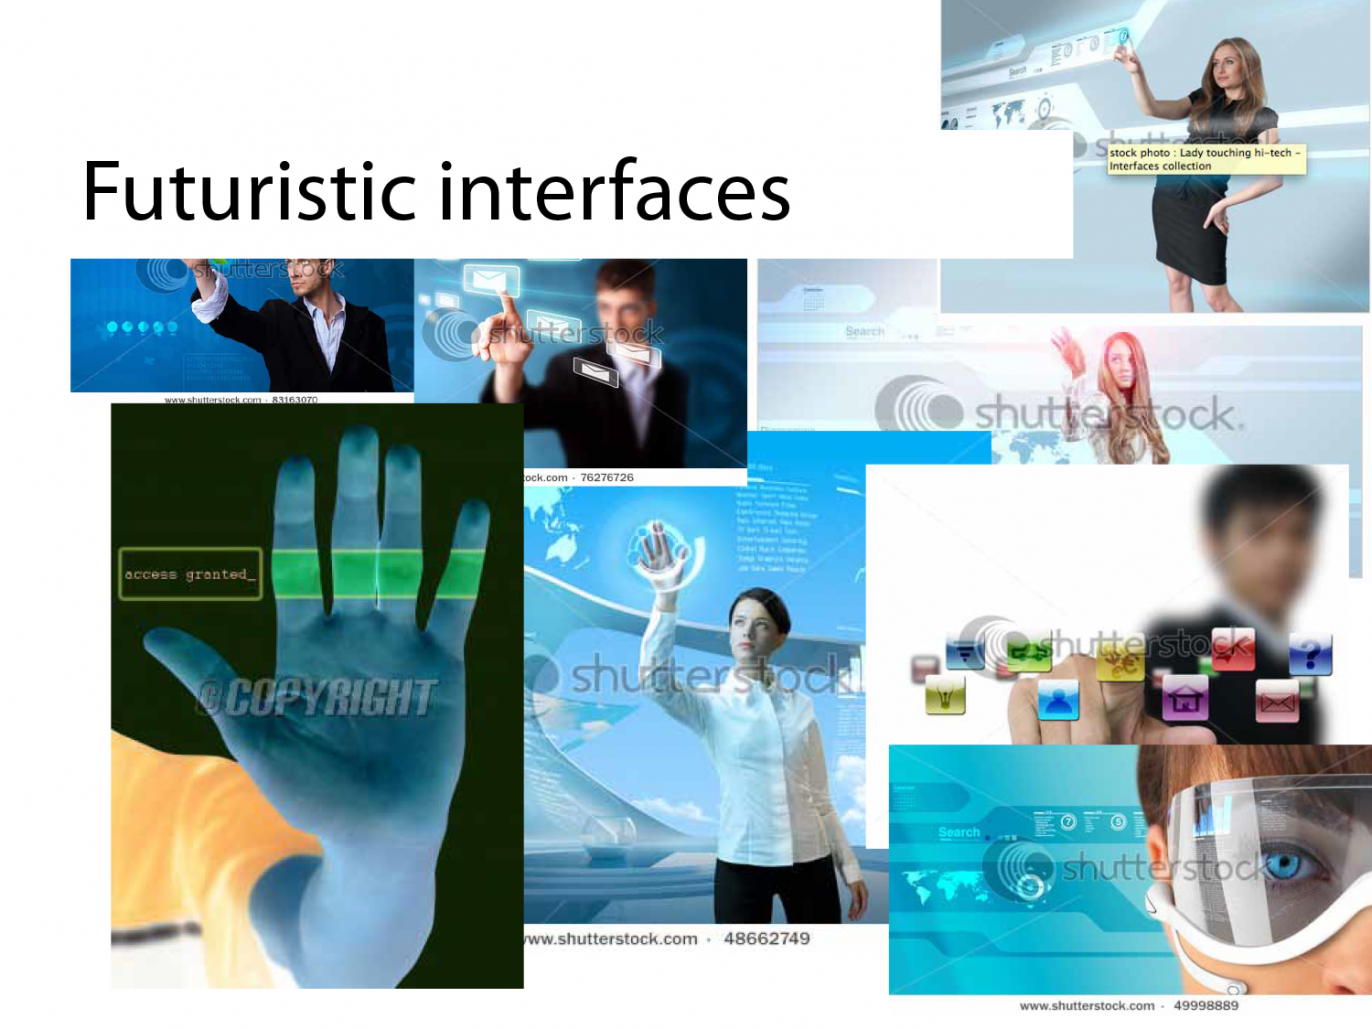 image showing futuristic interfaces